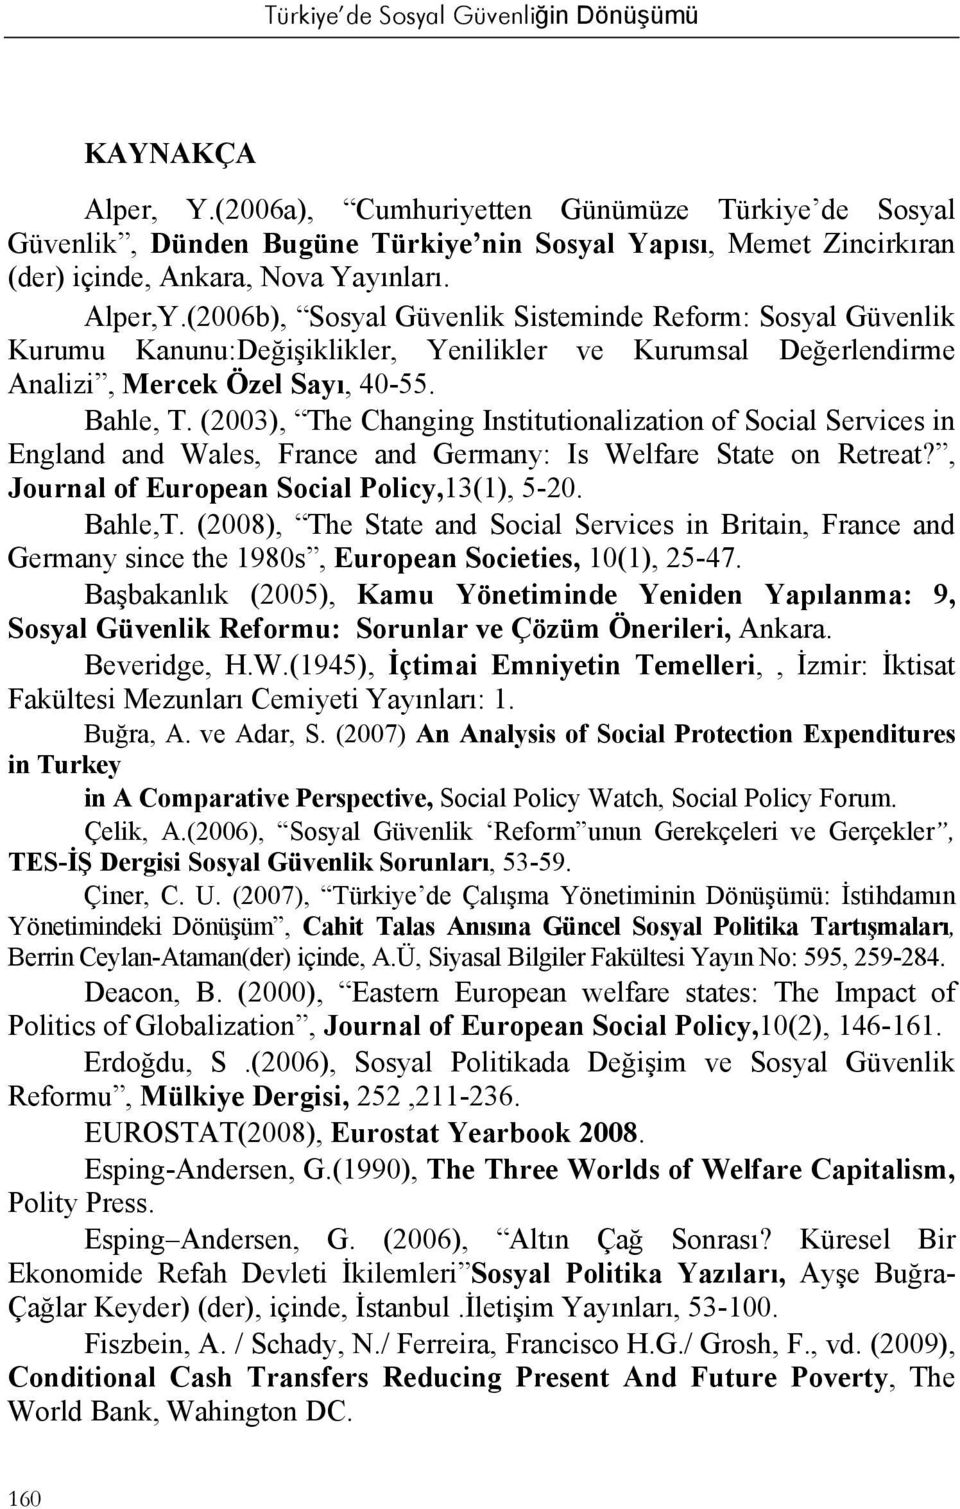 (2003), The Changing Institutionalization of Social Services in England and Wales, France and Germany: Is Welfare State on Retreat?, Journal of European Social Policy,13(1), 5-20. Bahle,T.